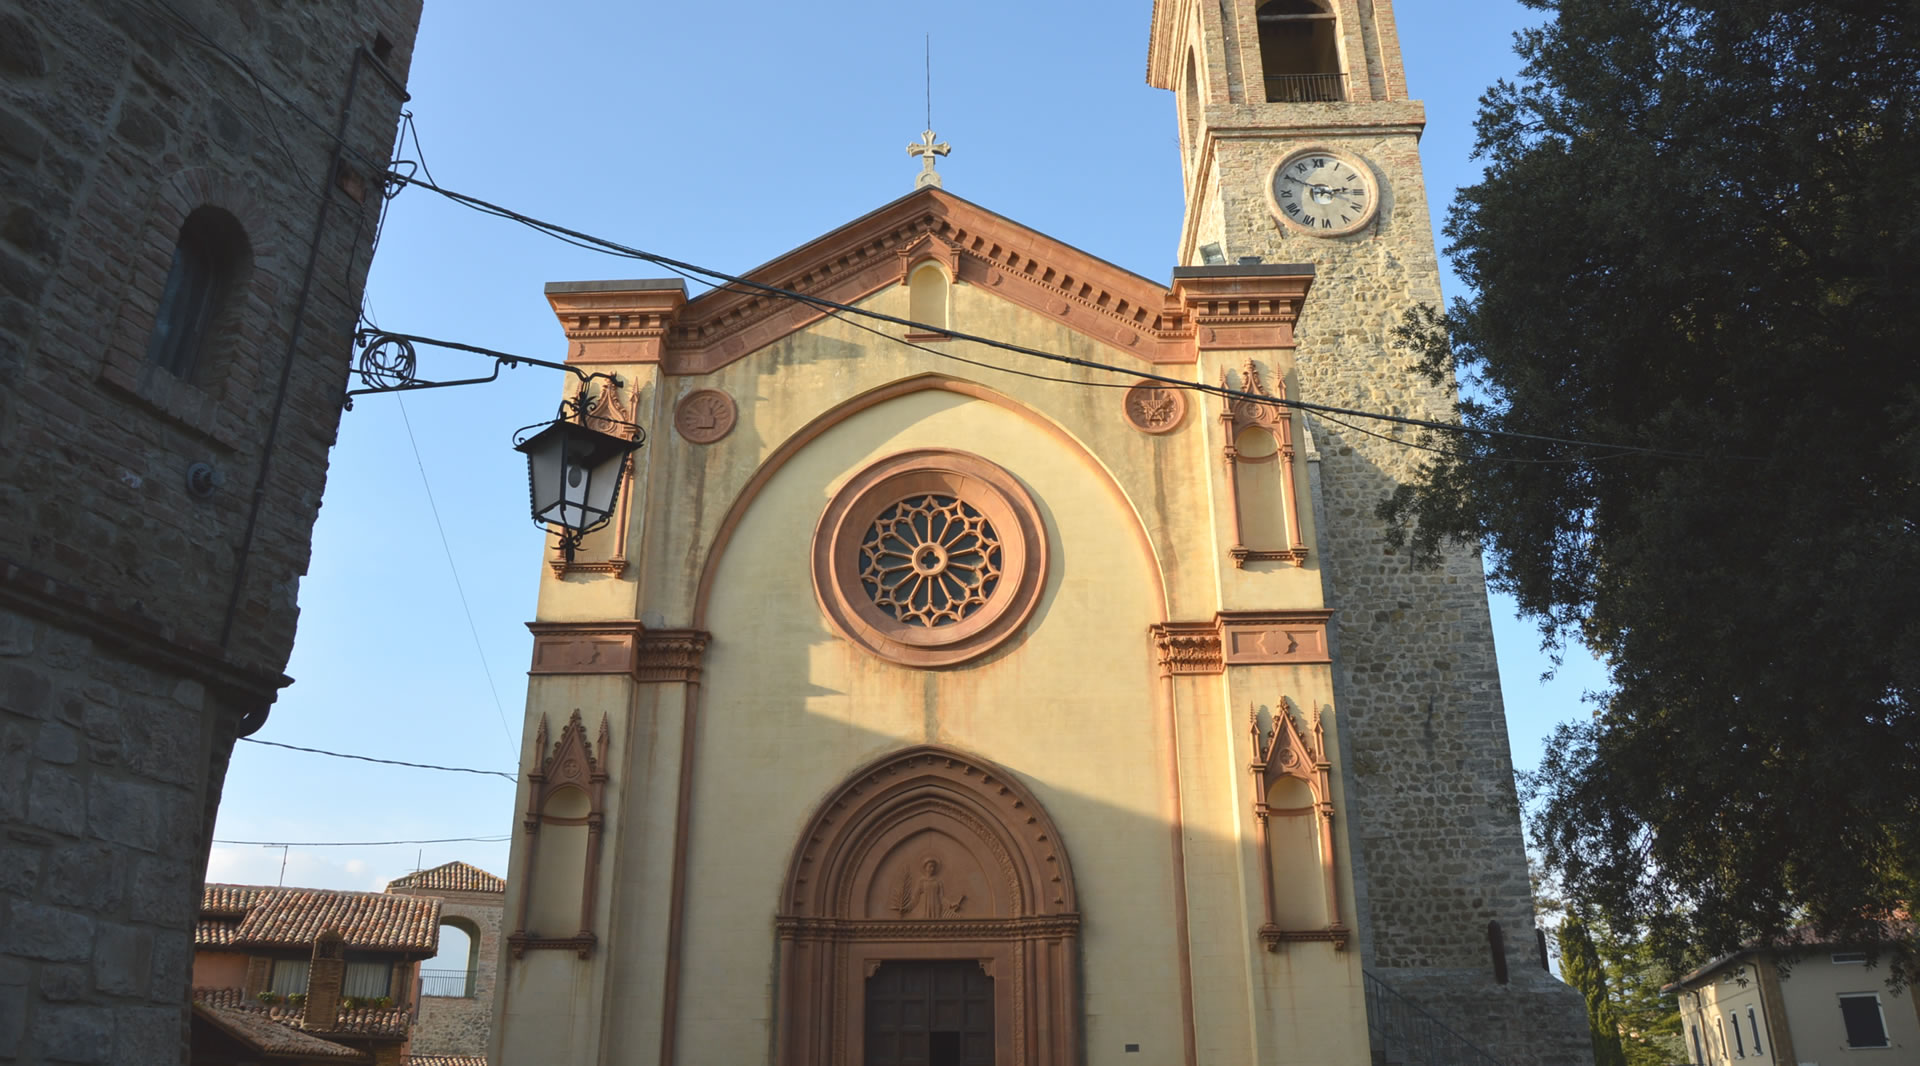 Parish church of San Lorenzo